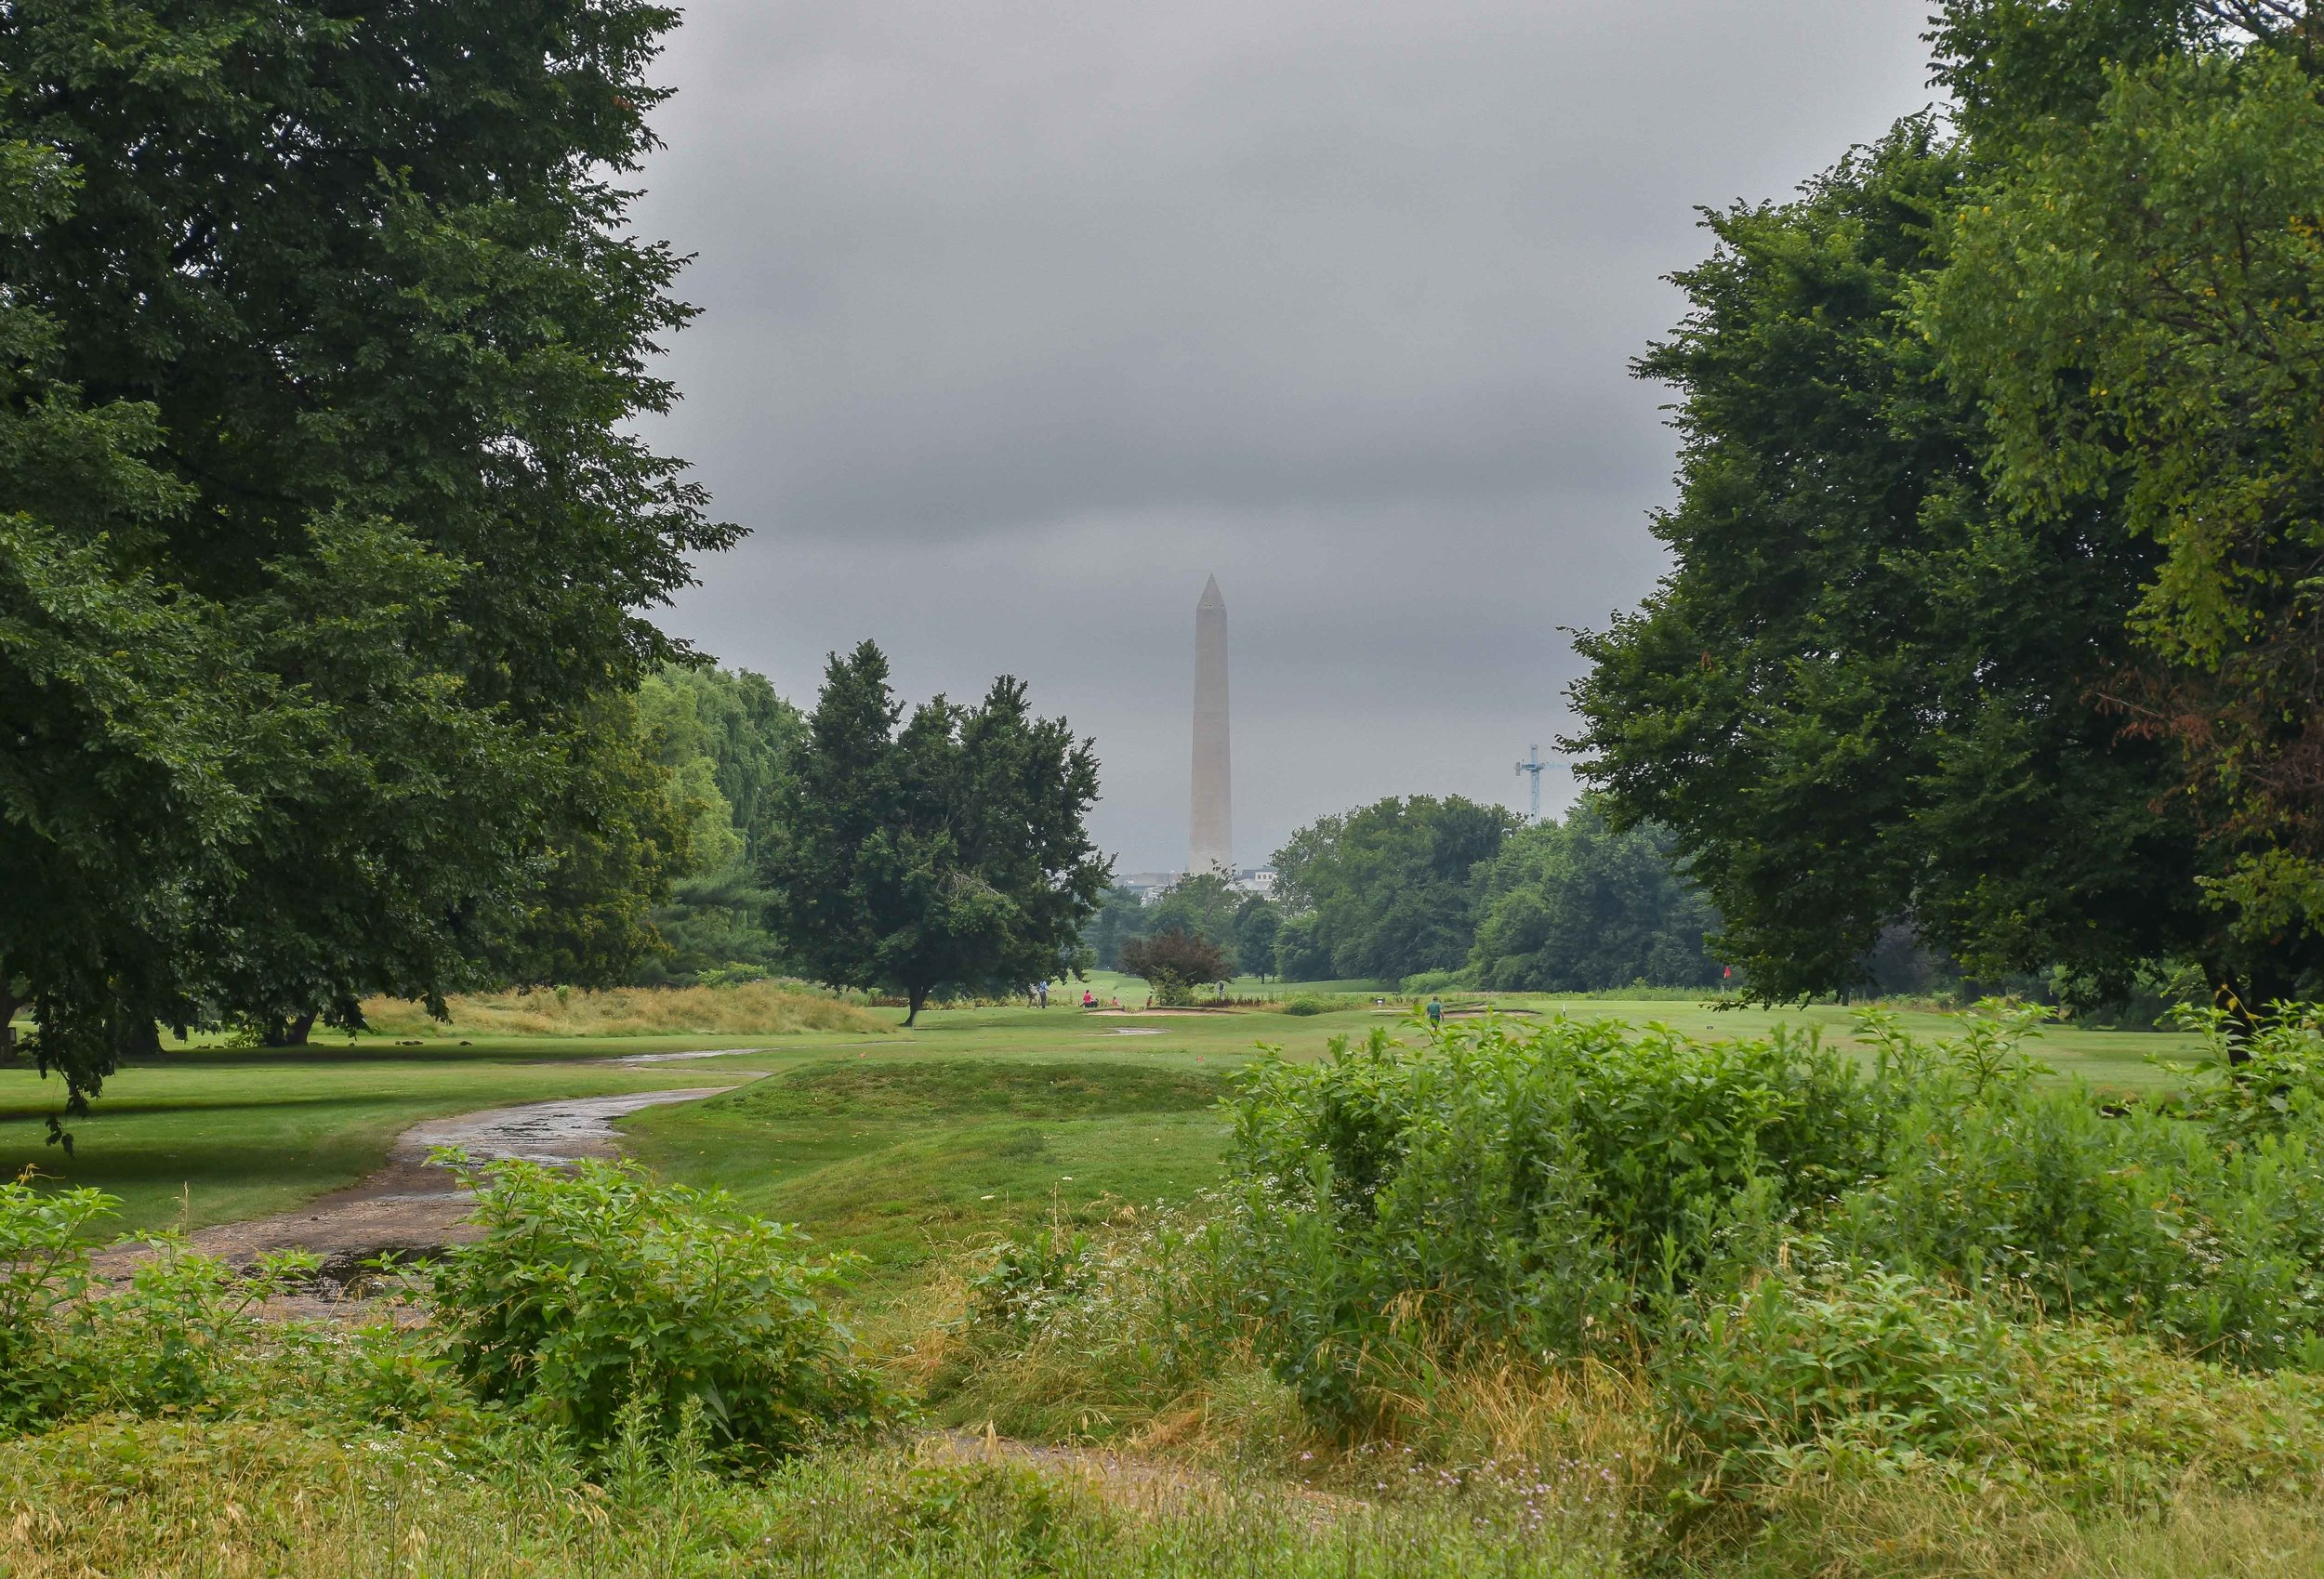 Even on a cloudy day, the view of the Washington Monument pops through at East Potomac.